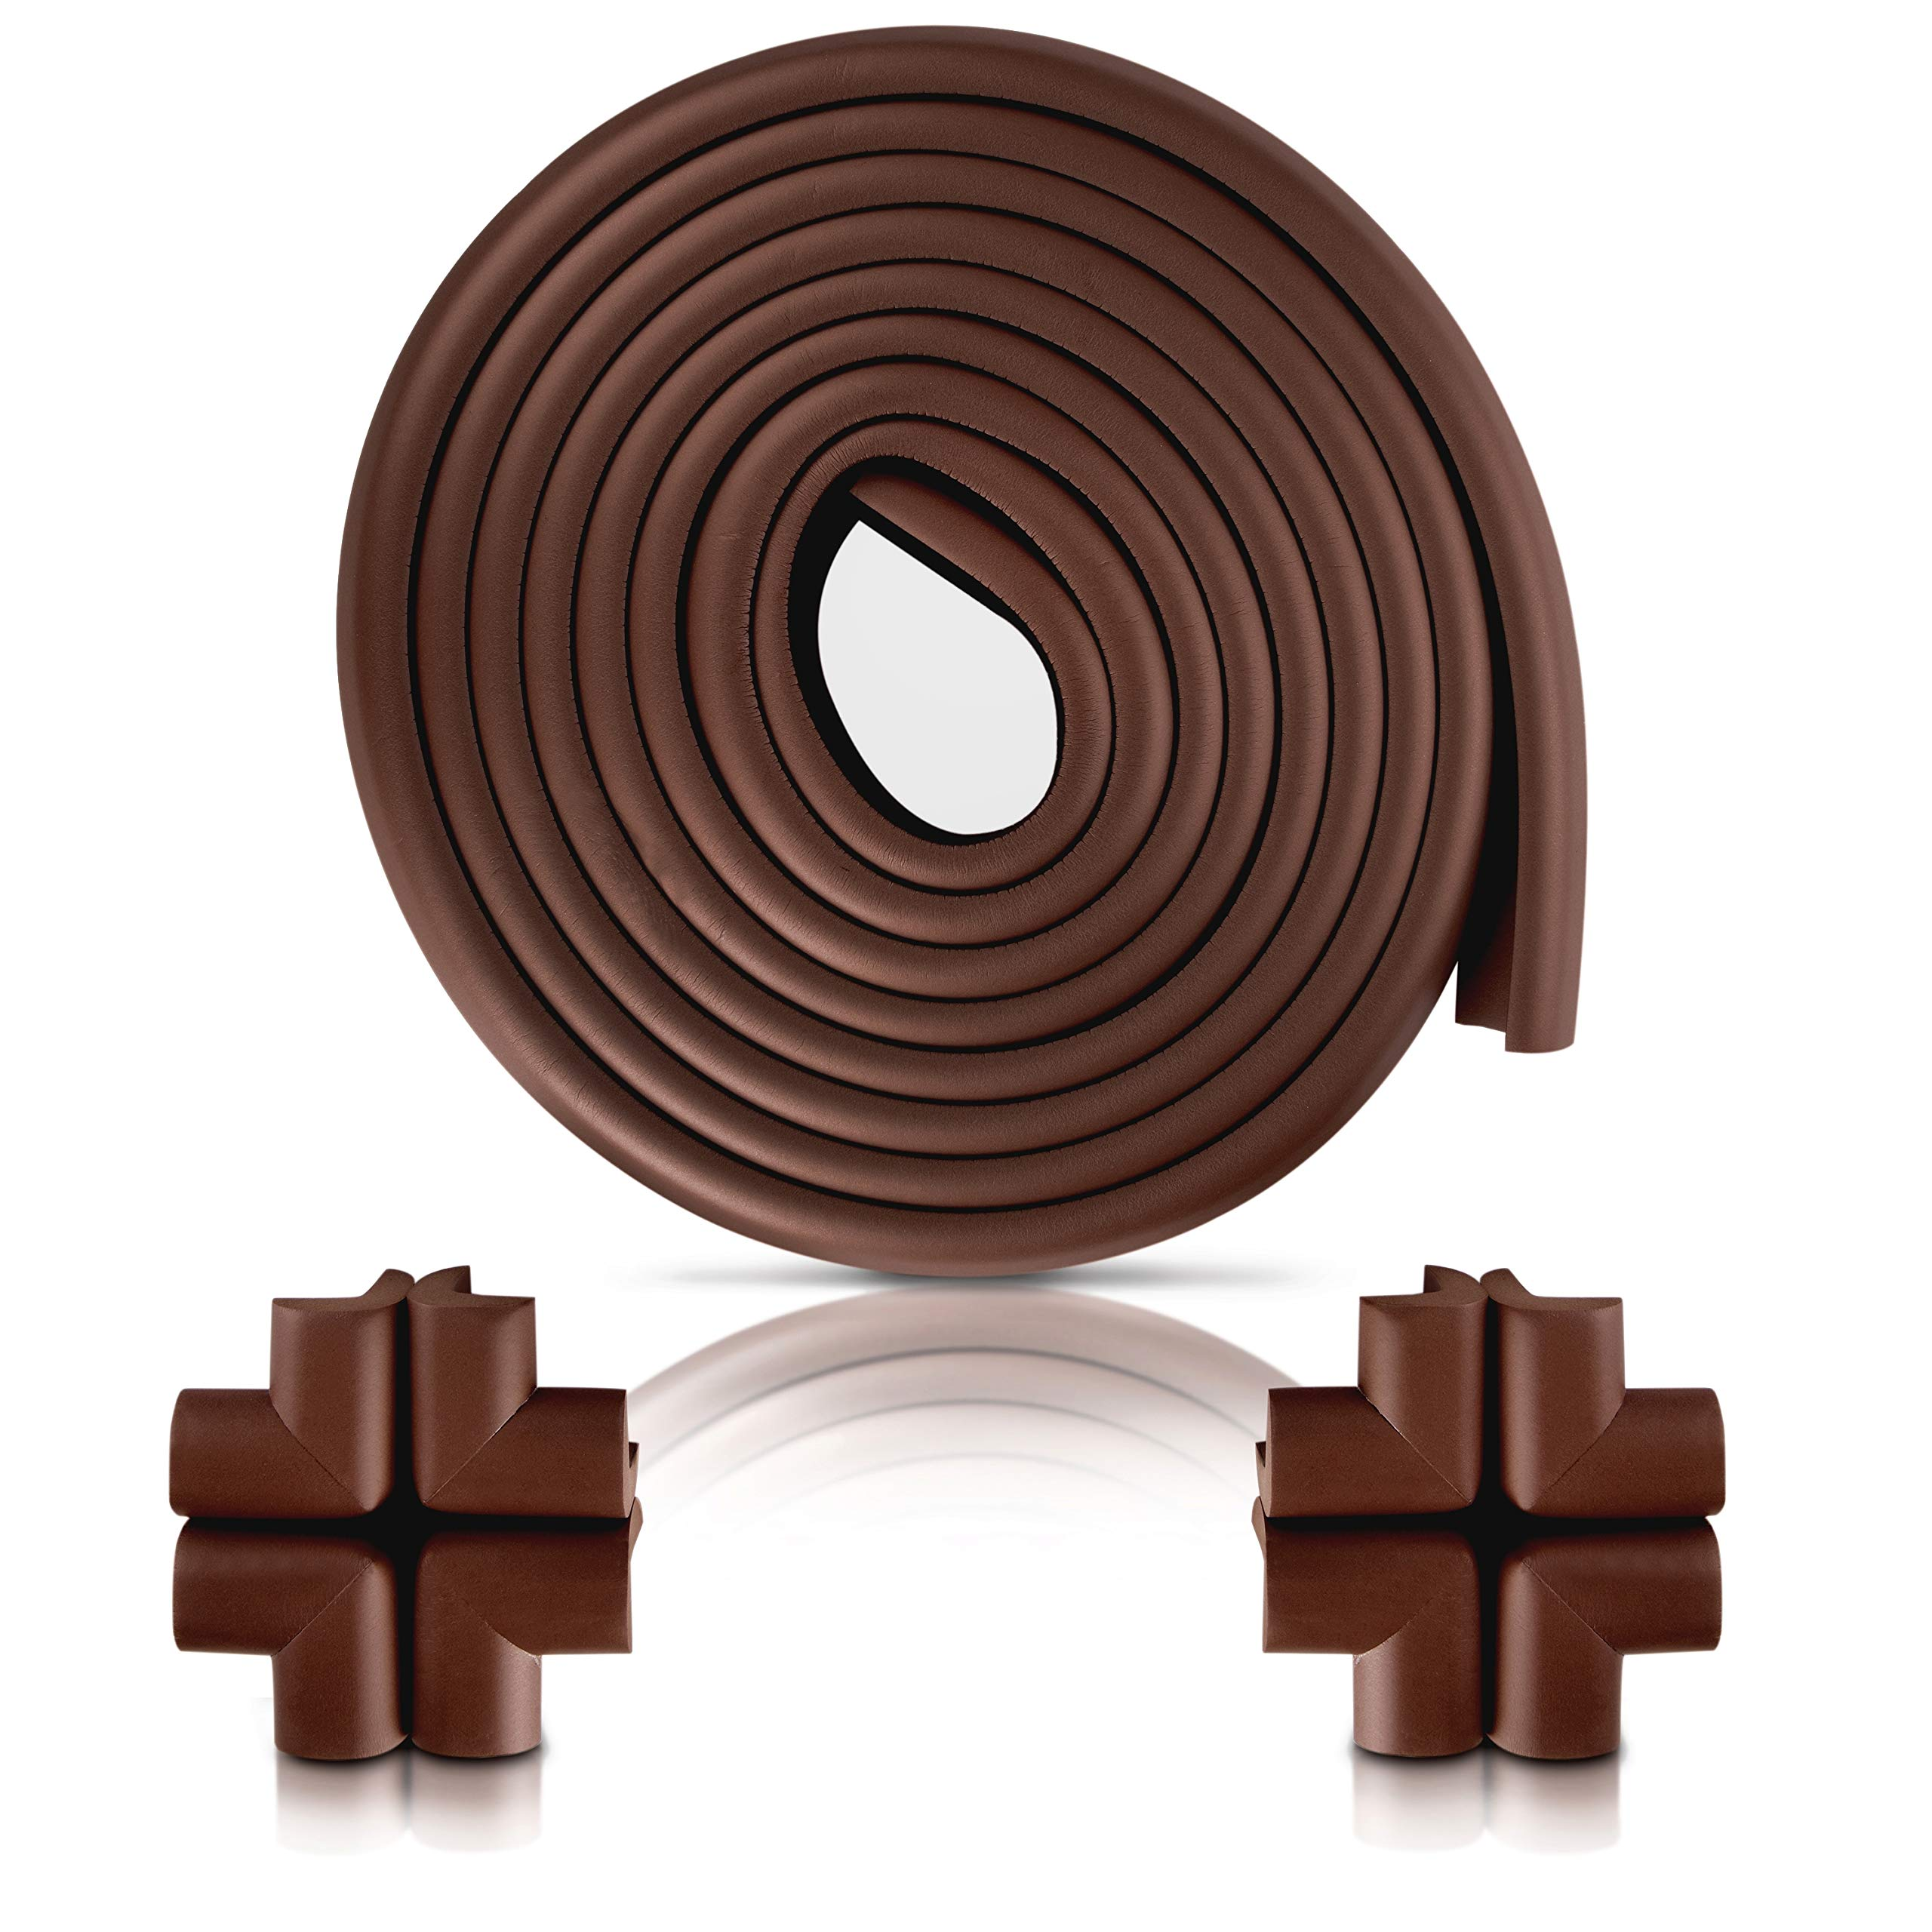 Sharp Edge and Furniture Safety Guards 20.4ft Protective Foam Cushion; 18ft Bumper 8 Adhesive Childsafe Corners Baby Caring Child Proofing Set NonToxic and Safe For Table, Fireplace, Countertop; Brown